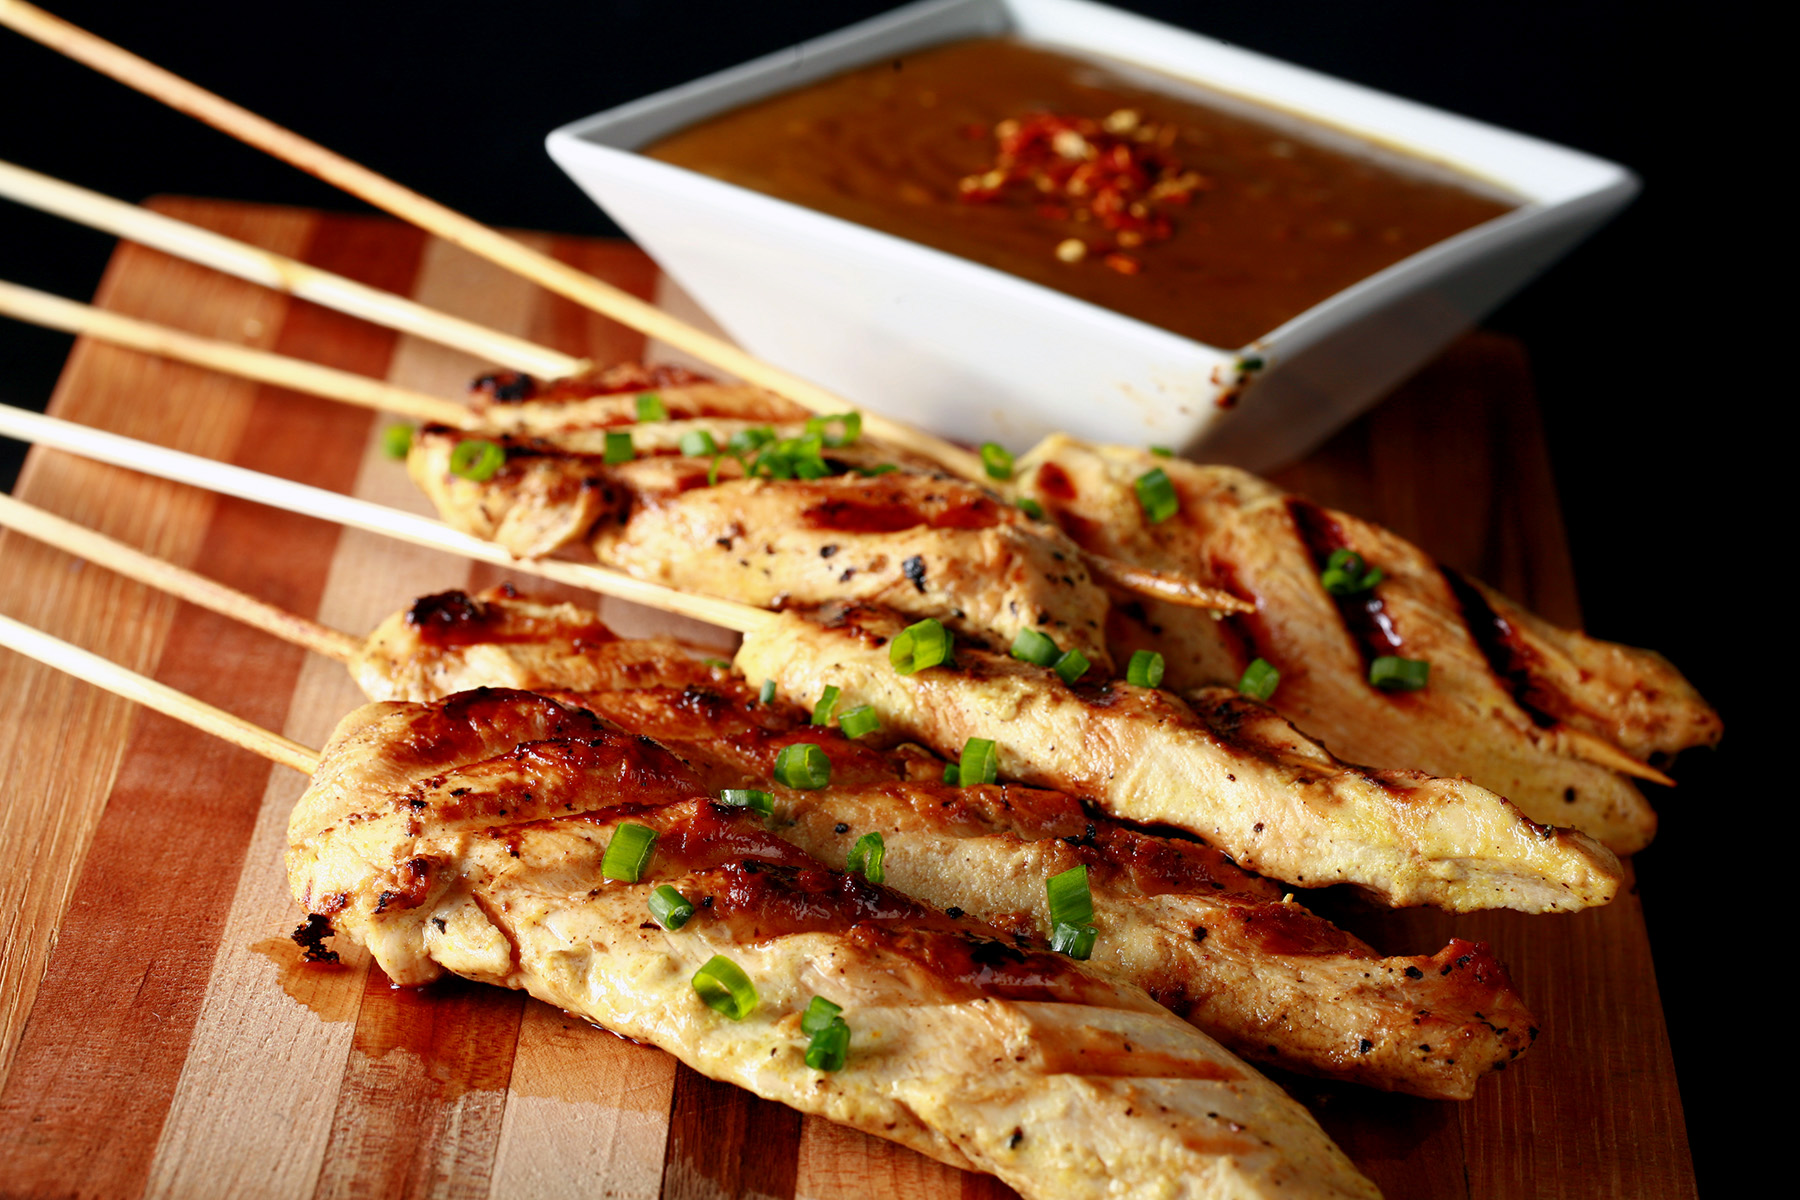 Several skewers of gluten-free chicken satay on a striped cutting board.  They are sprinkled with green onions and sitting next to a bowl of peanut sauce.